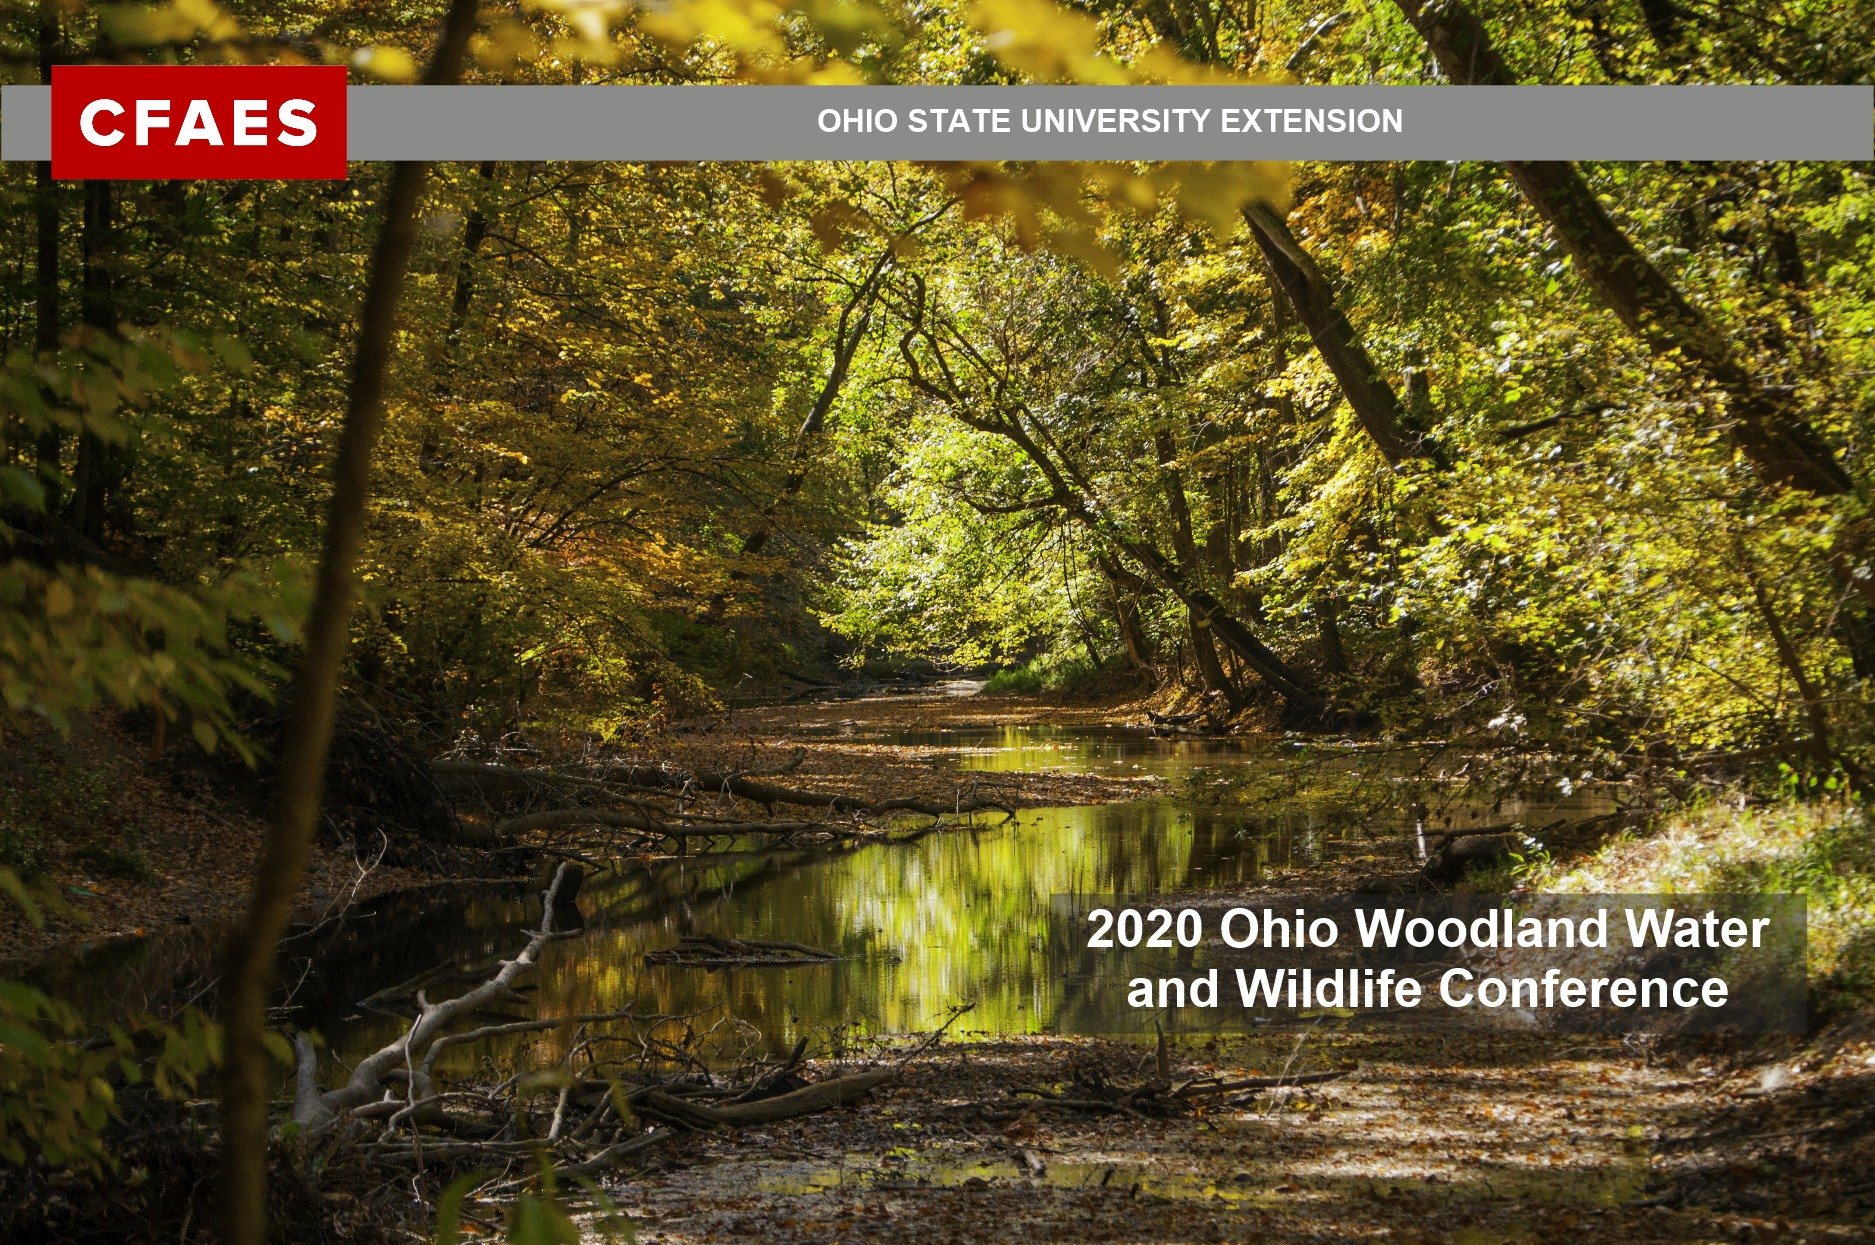 2020 Ohio Woodland Water and Wildlife Conference